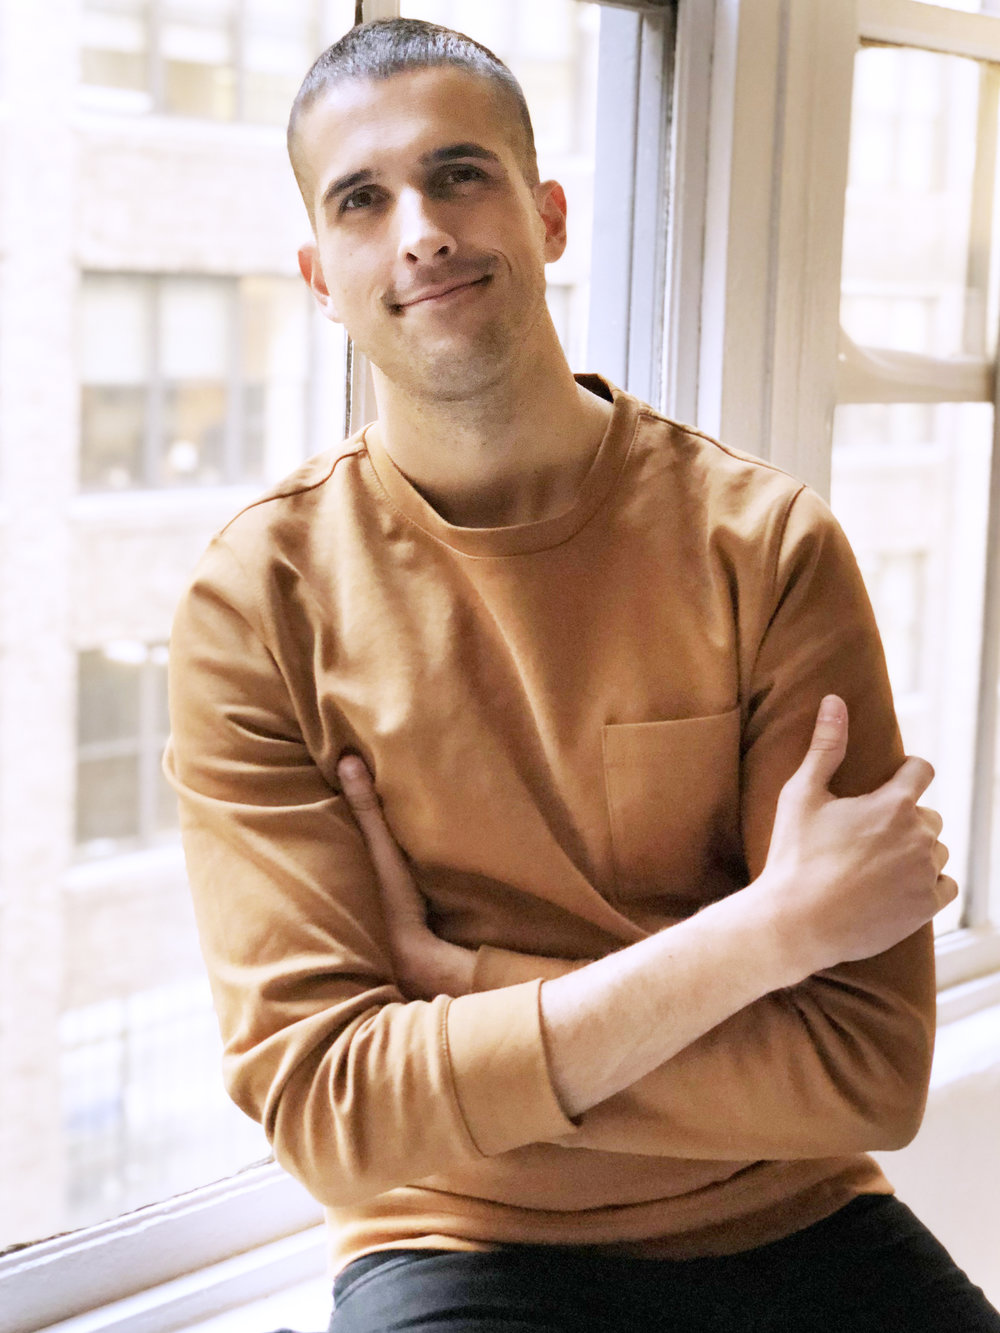 Jason Sherwood, co-founder and creative director - Jason is a Drama Desk Award nominee, a Lucille Lortel Award nominee, an American Theatre Wing Henry Hewes Design Award nominee, and LiveDesign Magazine